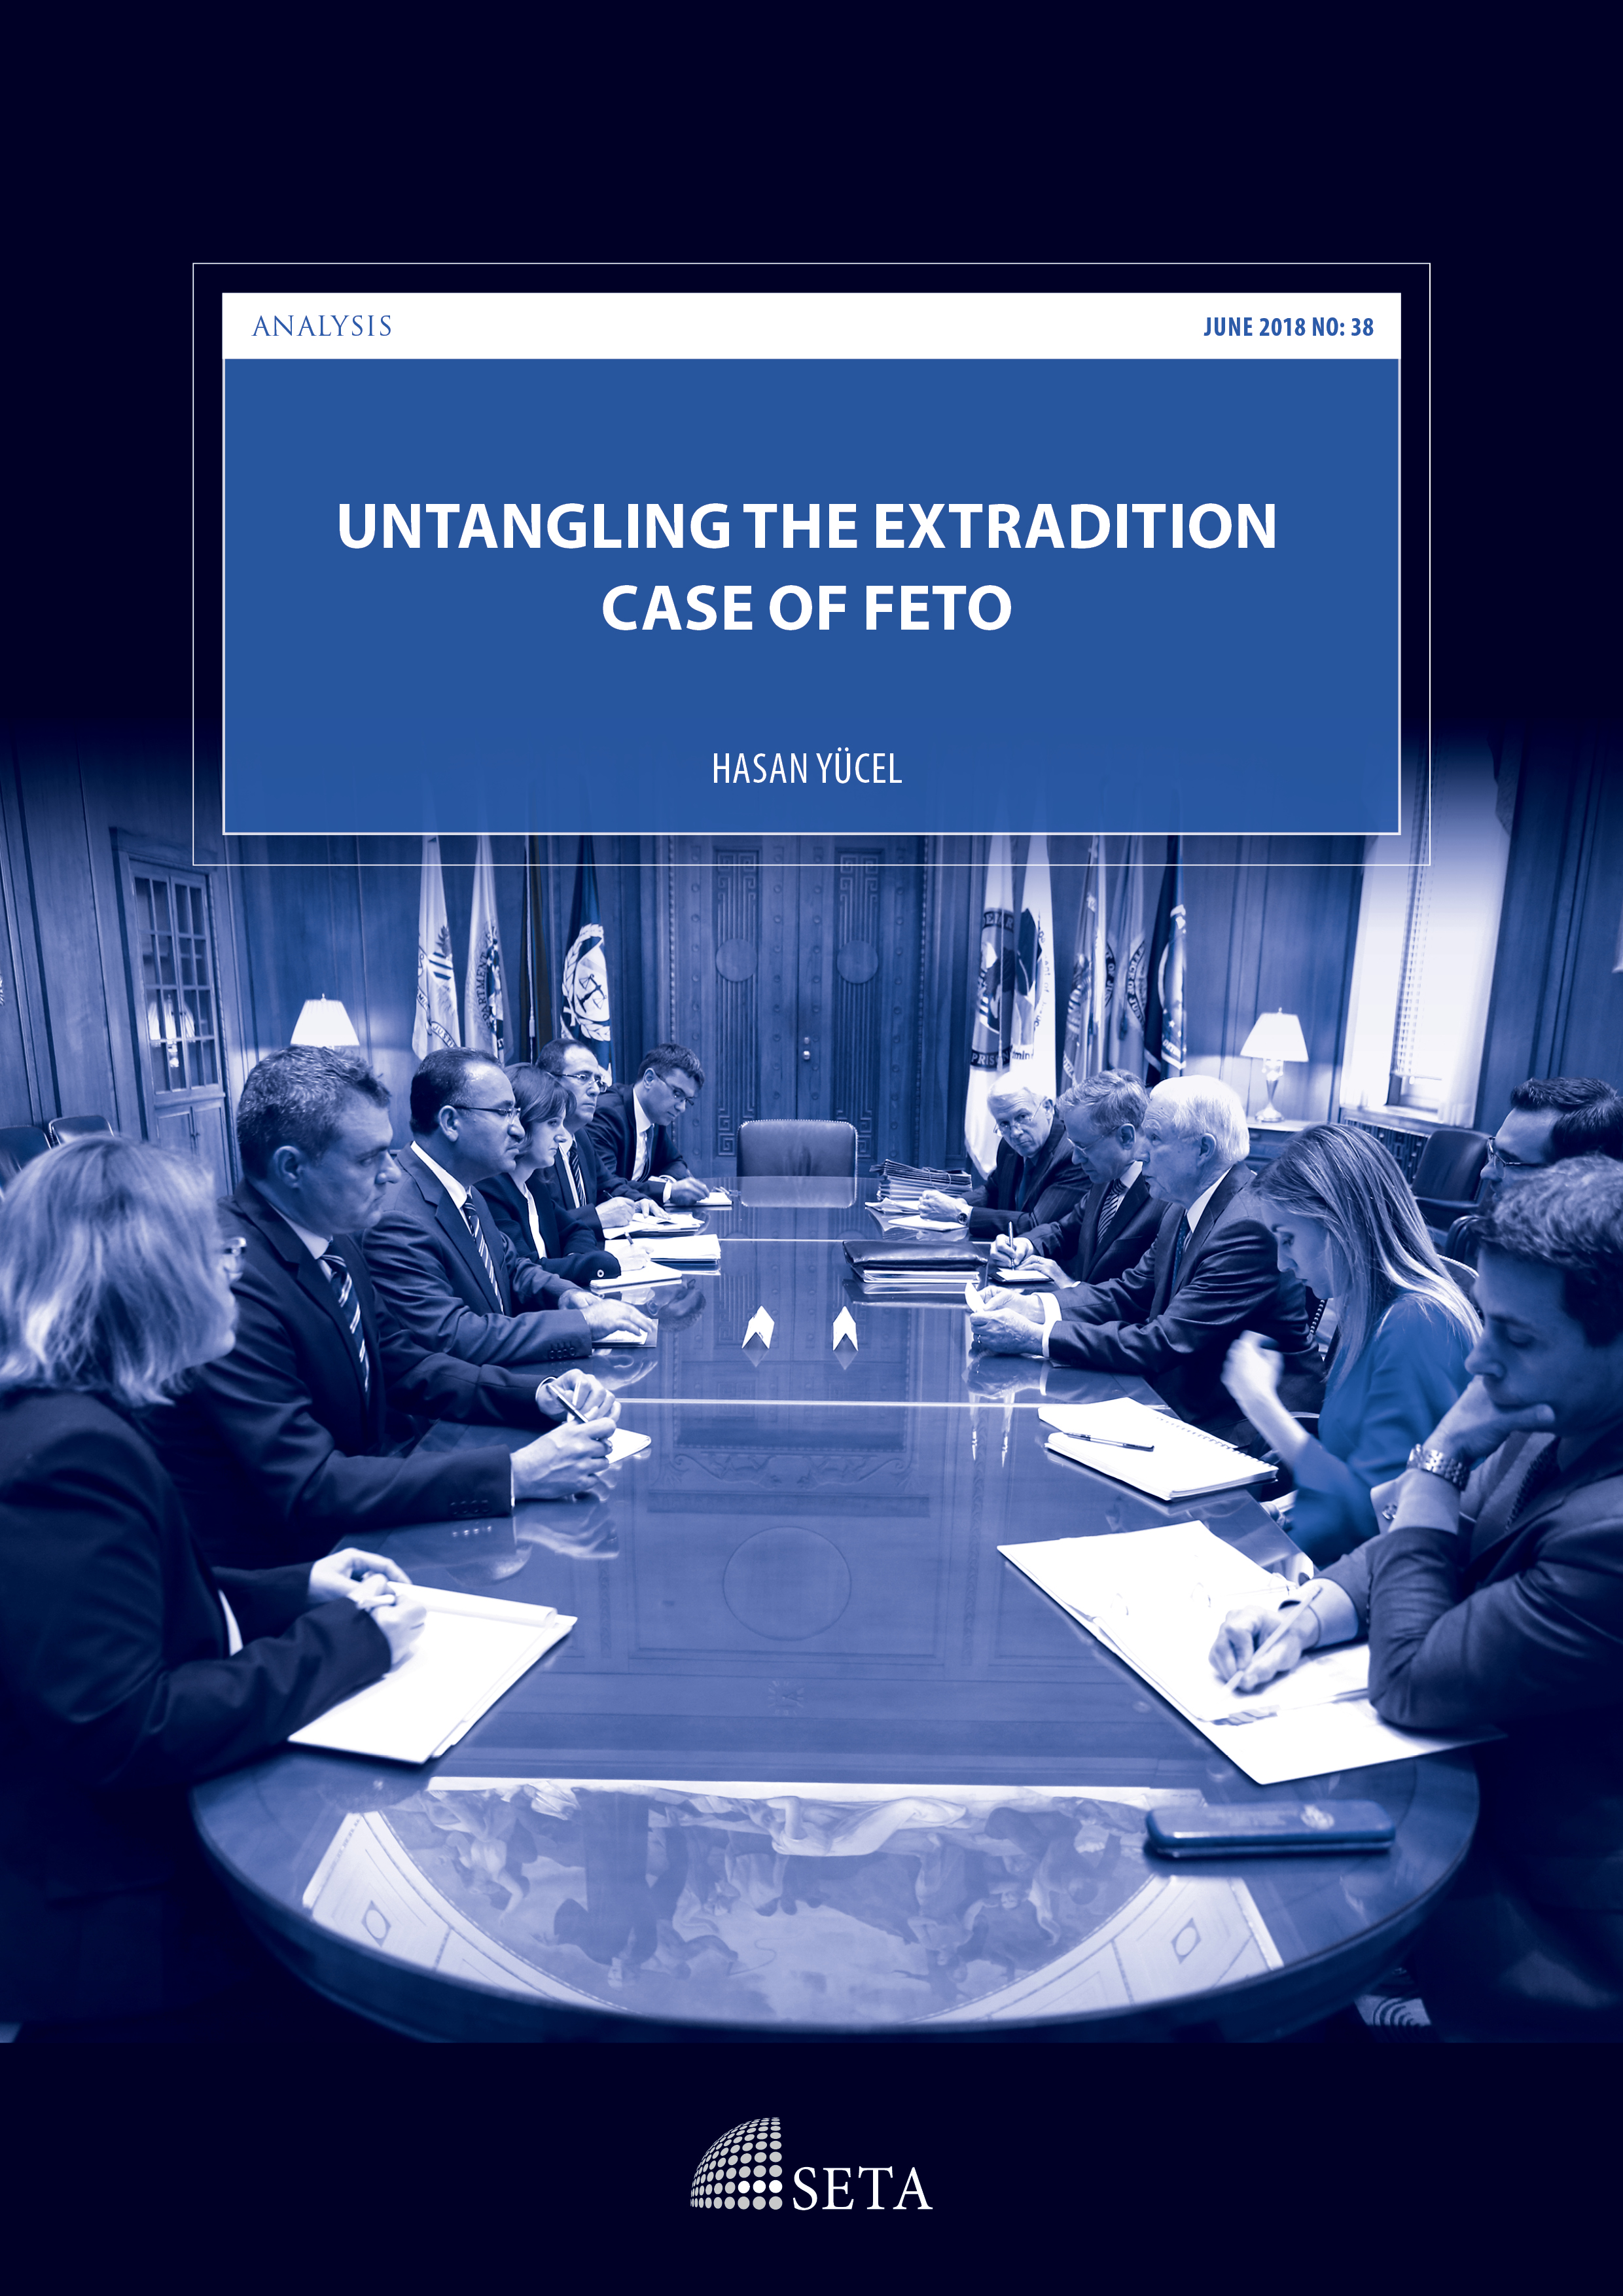 Untangling The Extradition Case of FETO